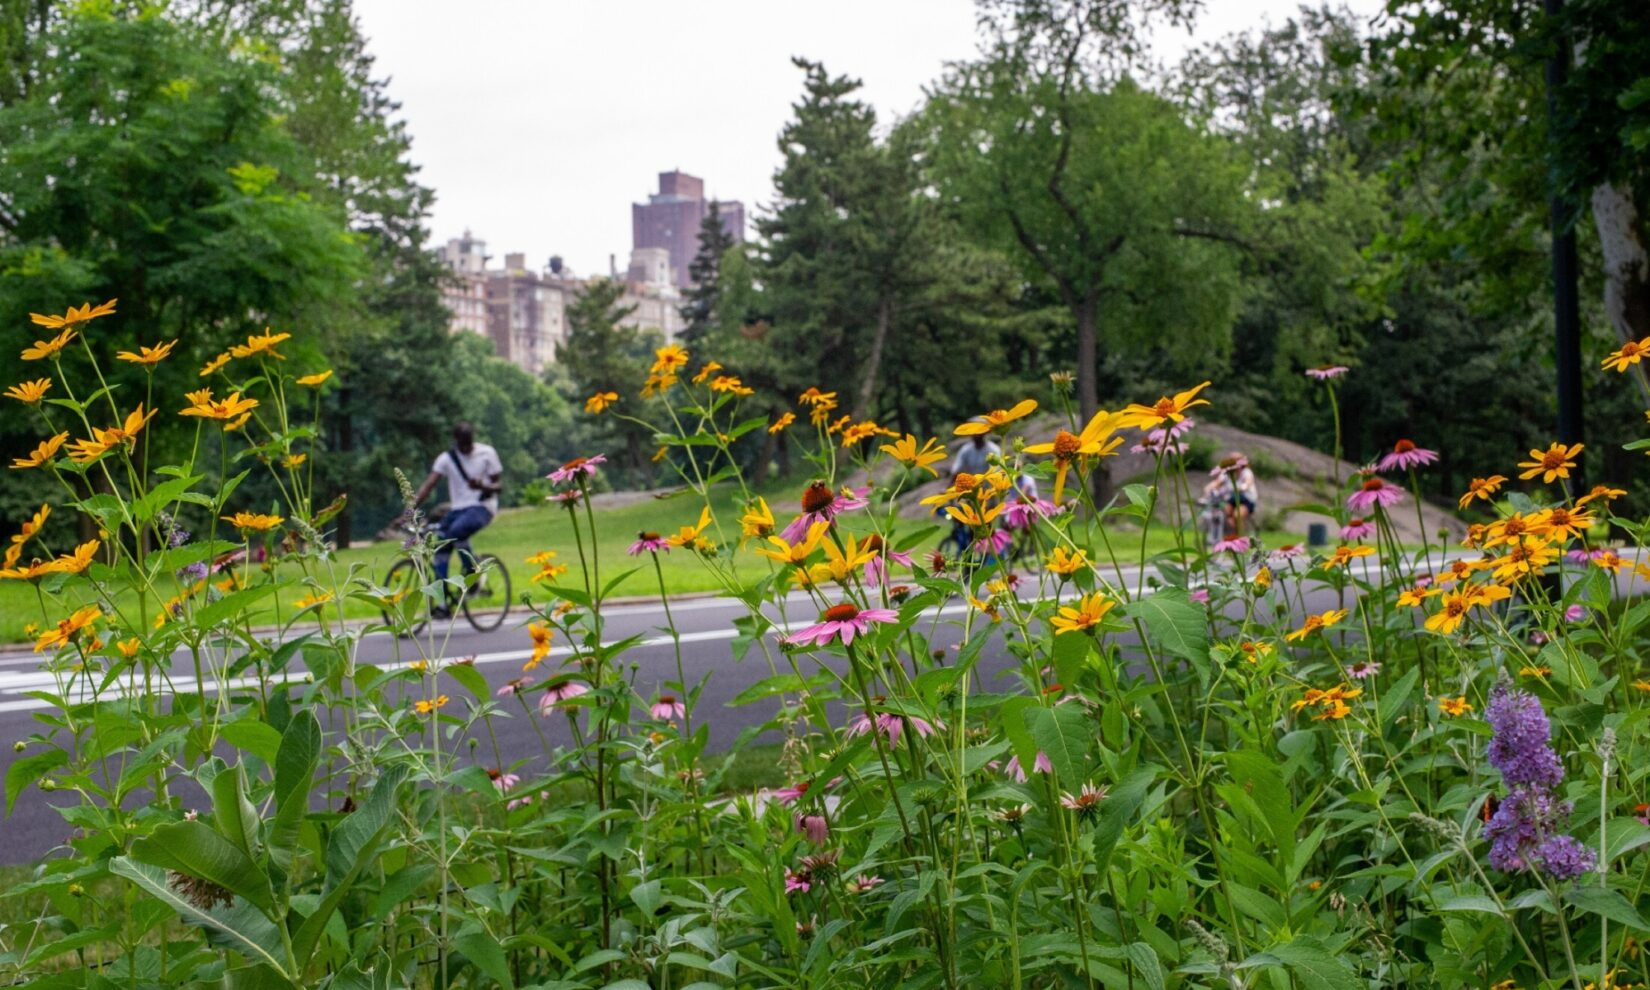 A bicyclist is seen through a stand of orange and purple flowers.